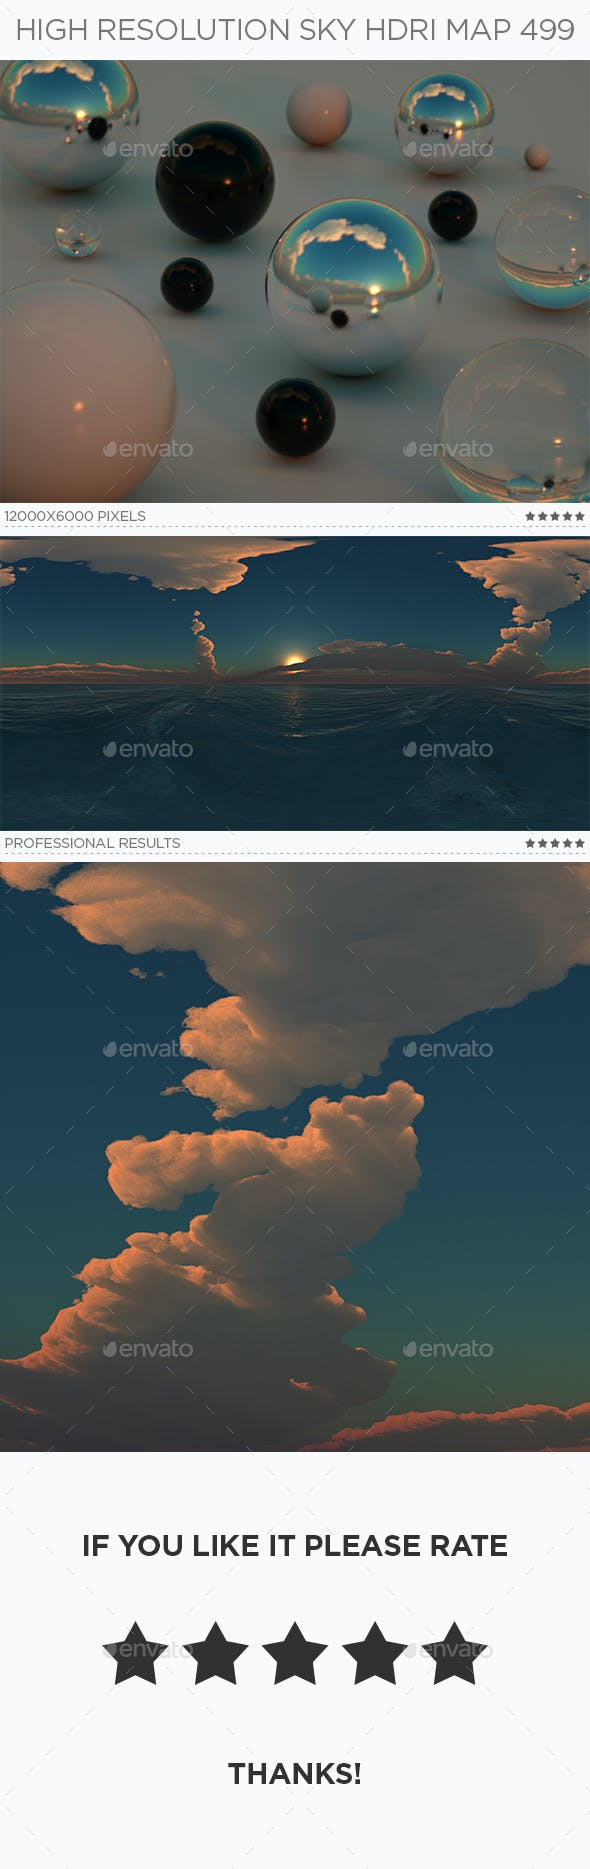 High Resolution Sky HDRi Map 499 - 3DOcean Item for Sale